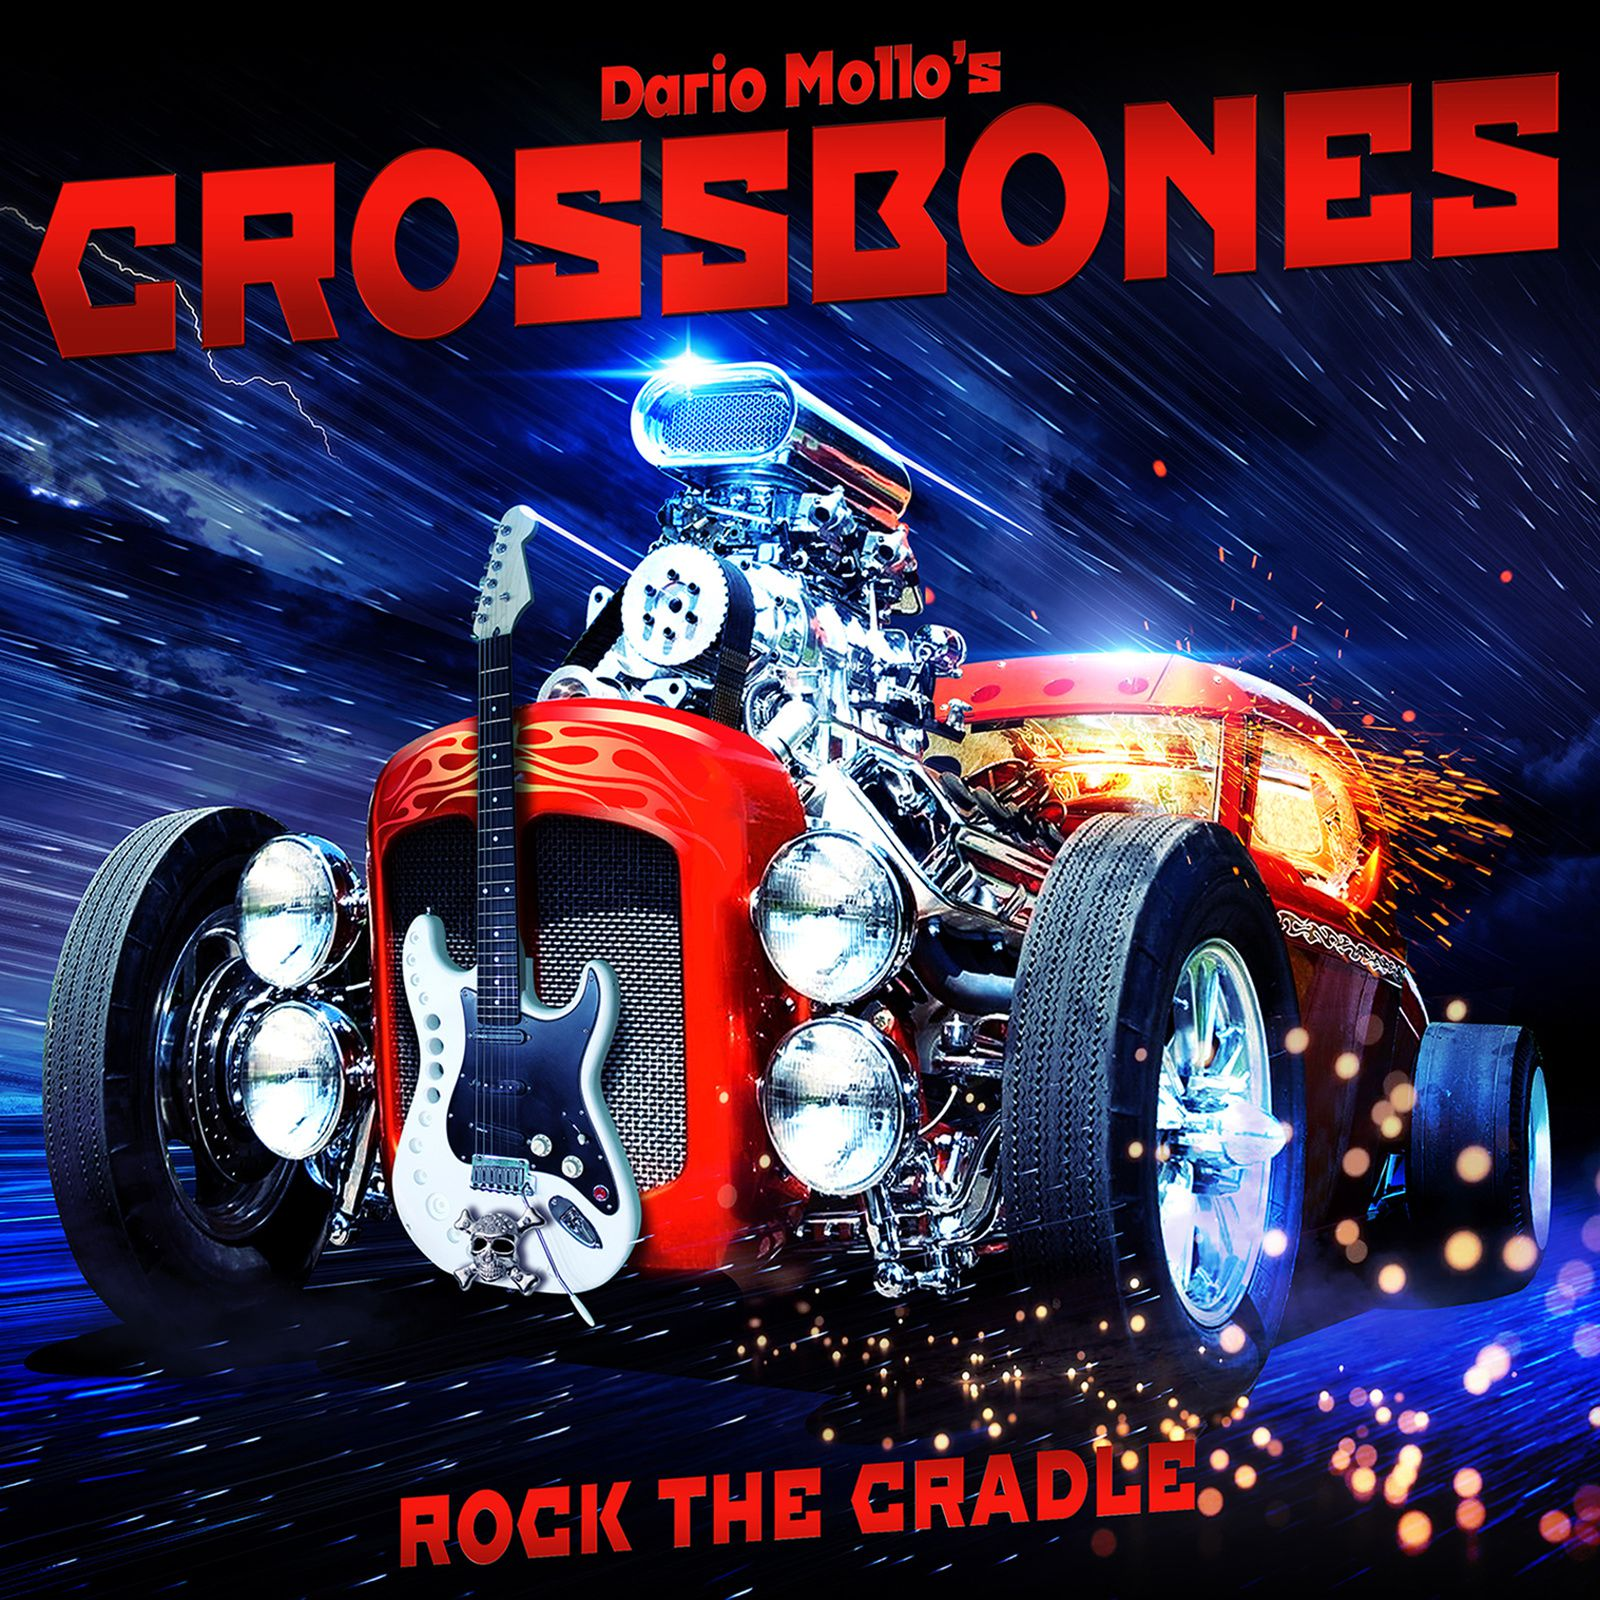 CD review DARIO MOLLO'S CROSSBONES &quot&#x3B;Rock the Cradle&quot&#x3B;